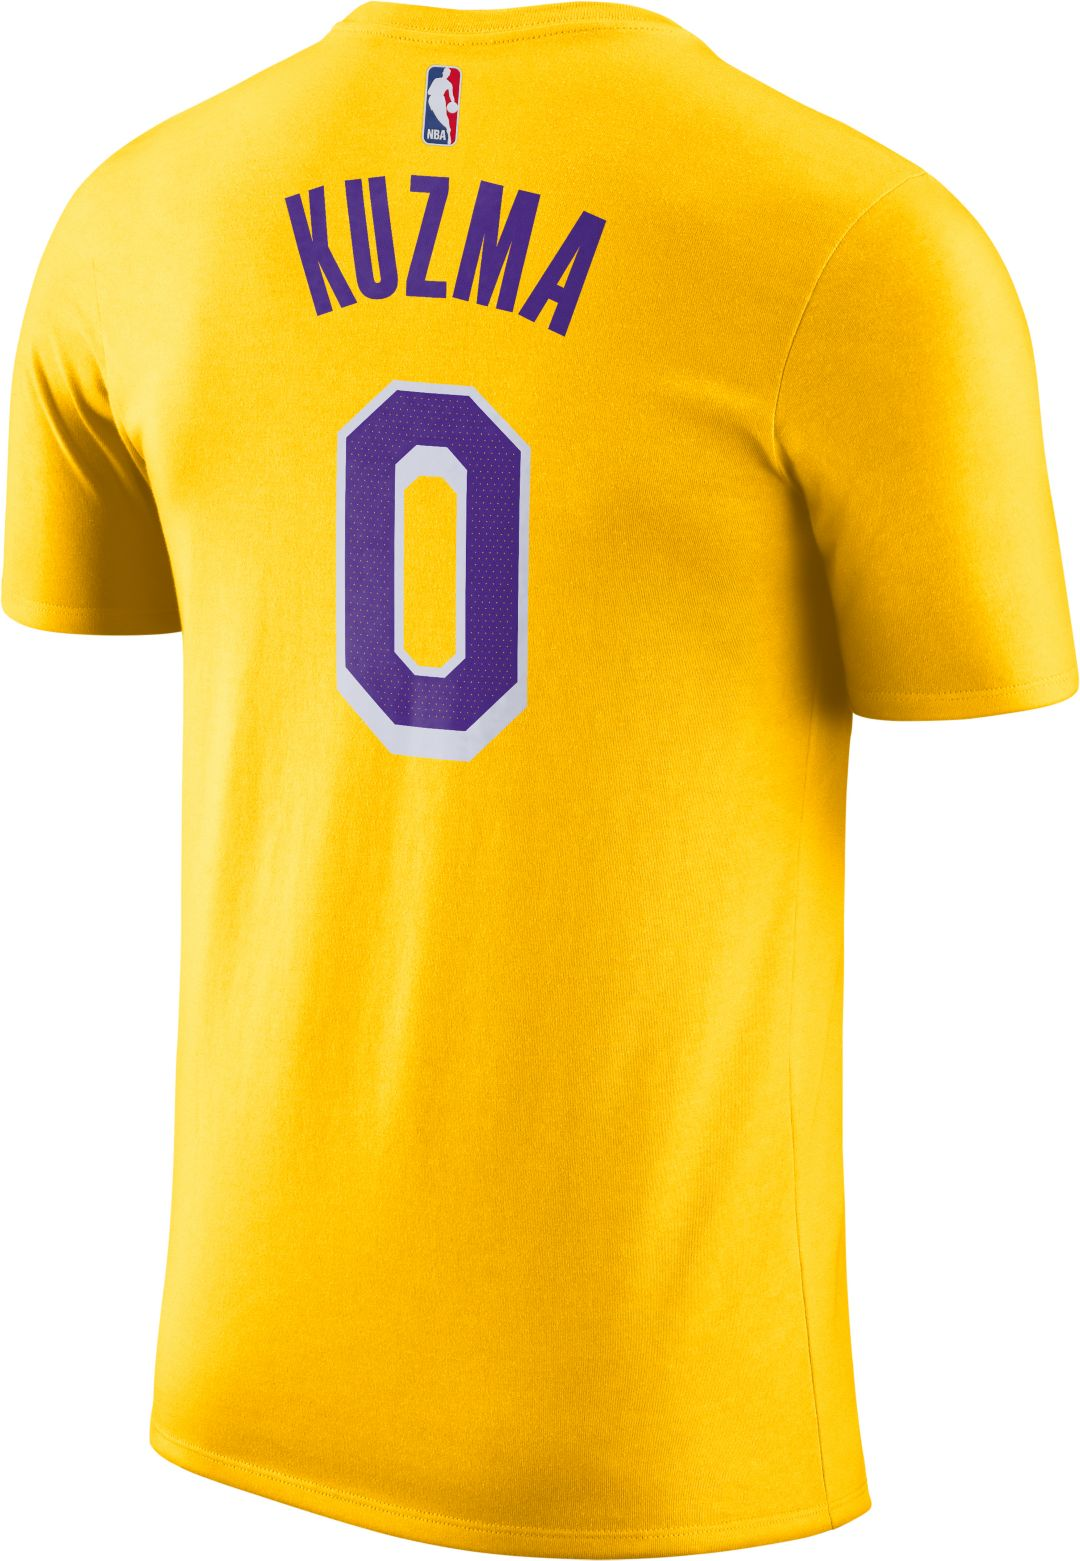 best website cec38 64170 Nike Youth Los Angeles Lakers Kyle Kuzma #0 Dri-FIT Gold T-Shirt